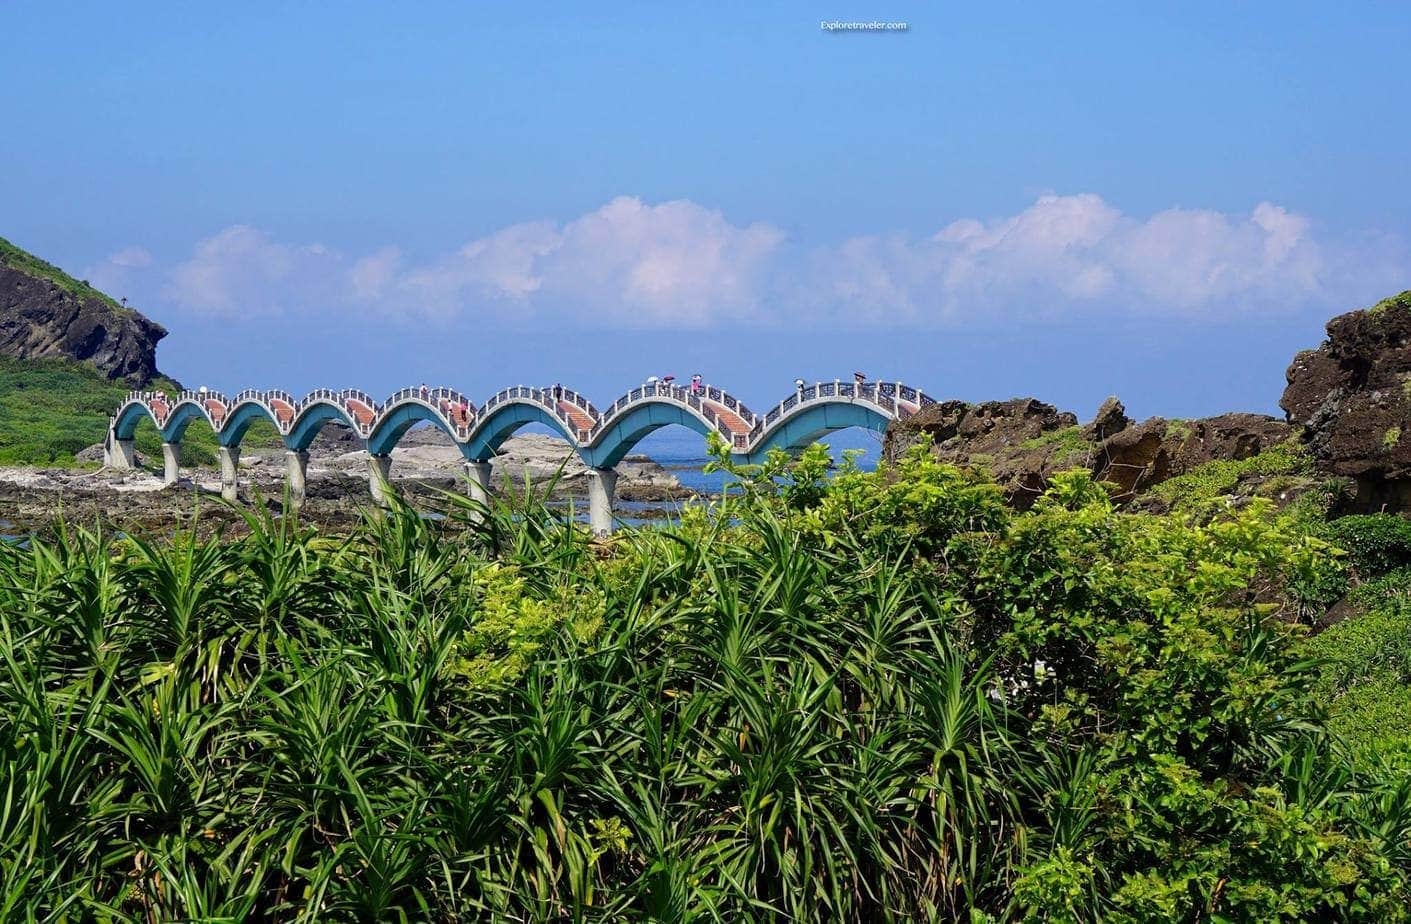 Sanxiantai Dragon Bridge